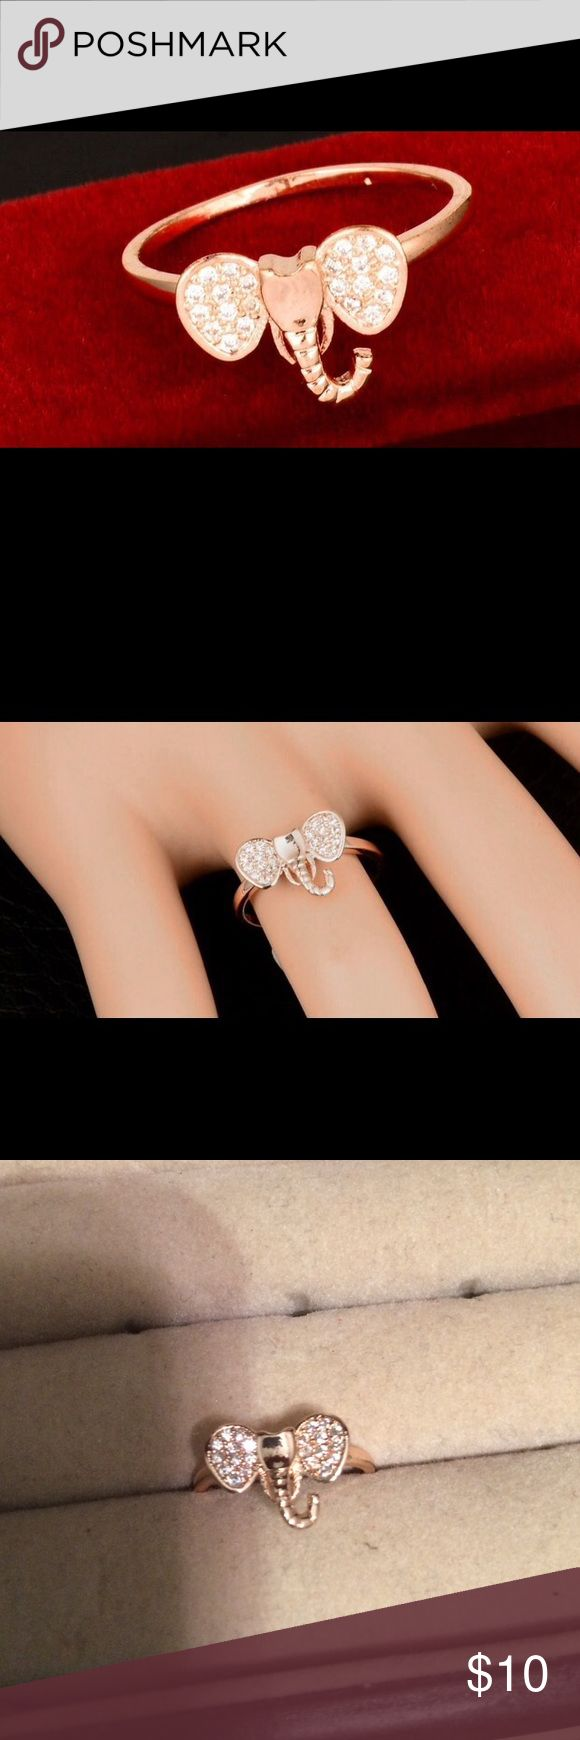 14k Rose Gold Plated Zircon Elephant Ring Size 6 NWOT 3rd and 4th pics are of actual ring in my jewelry box Jewelry Rings